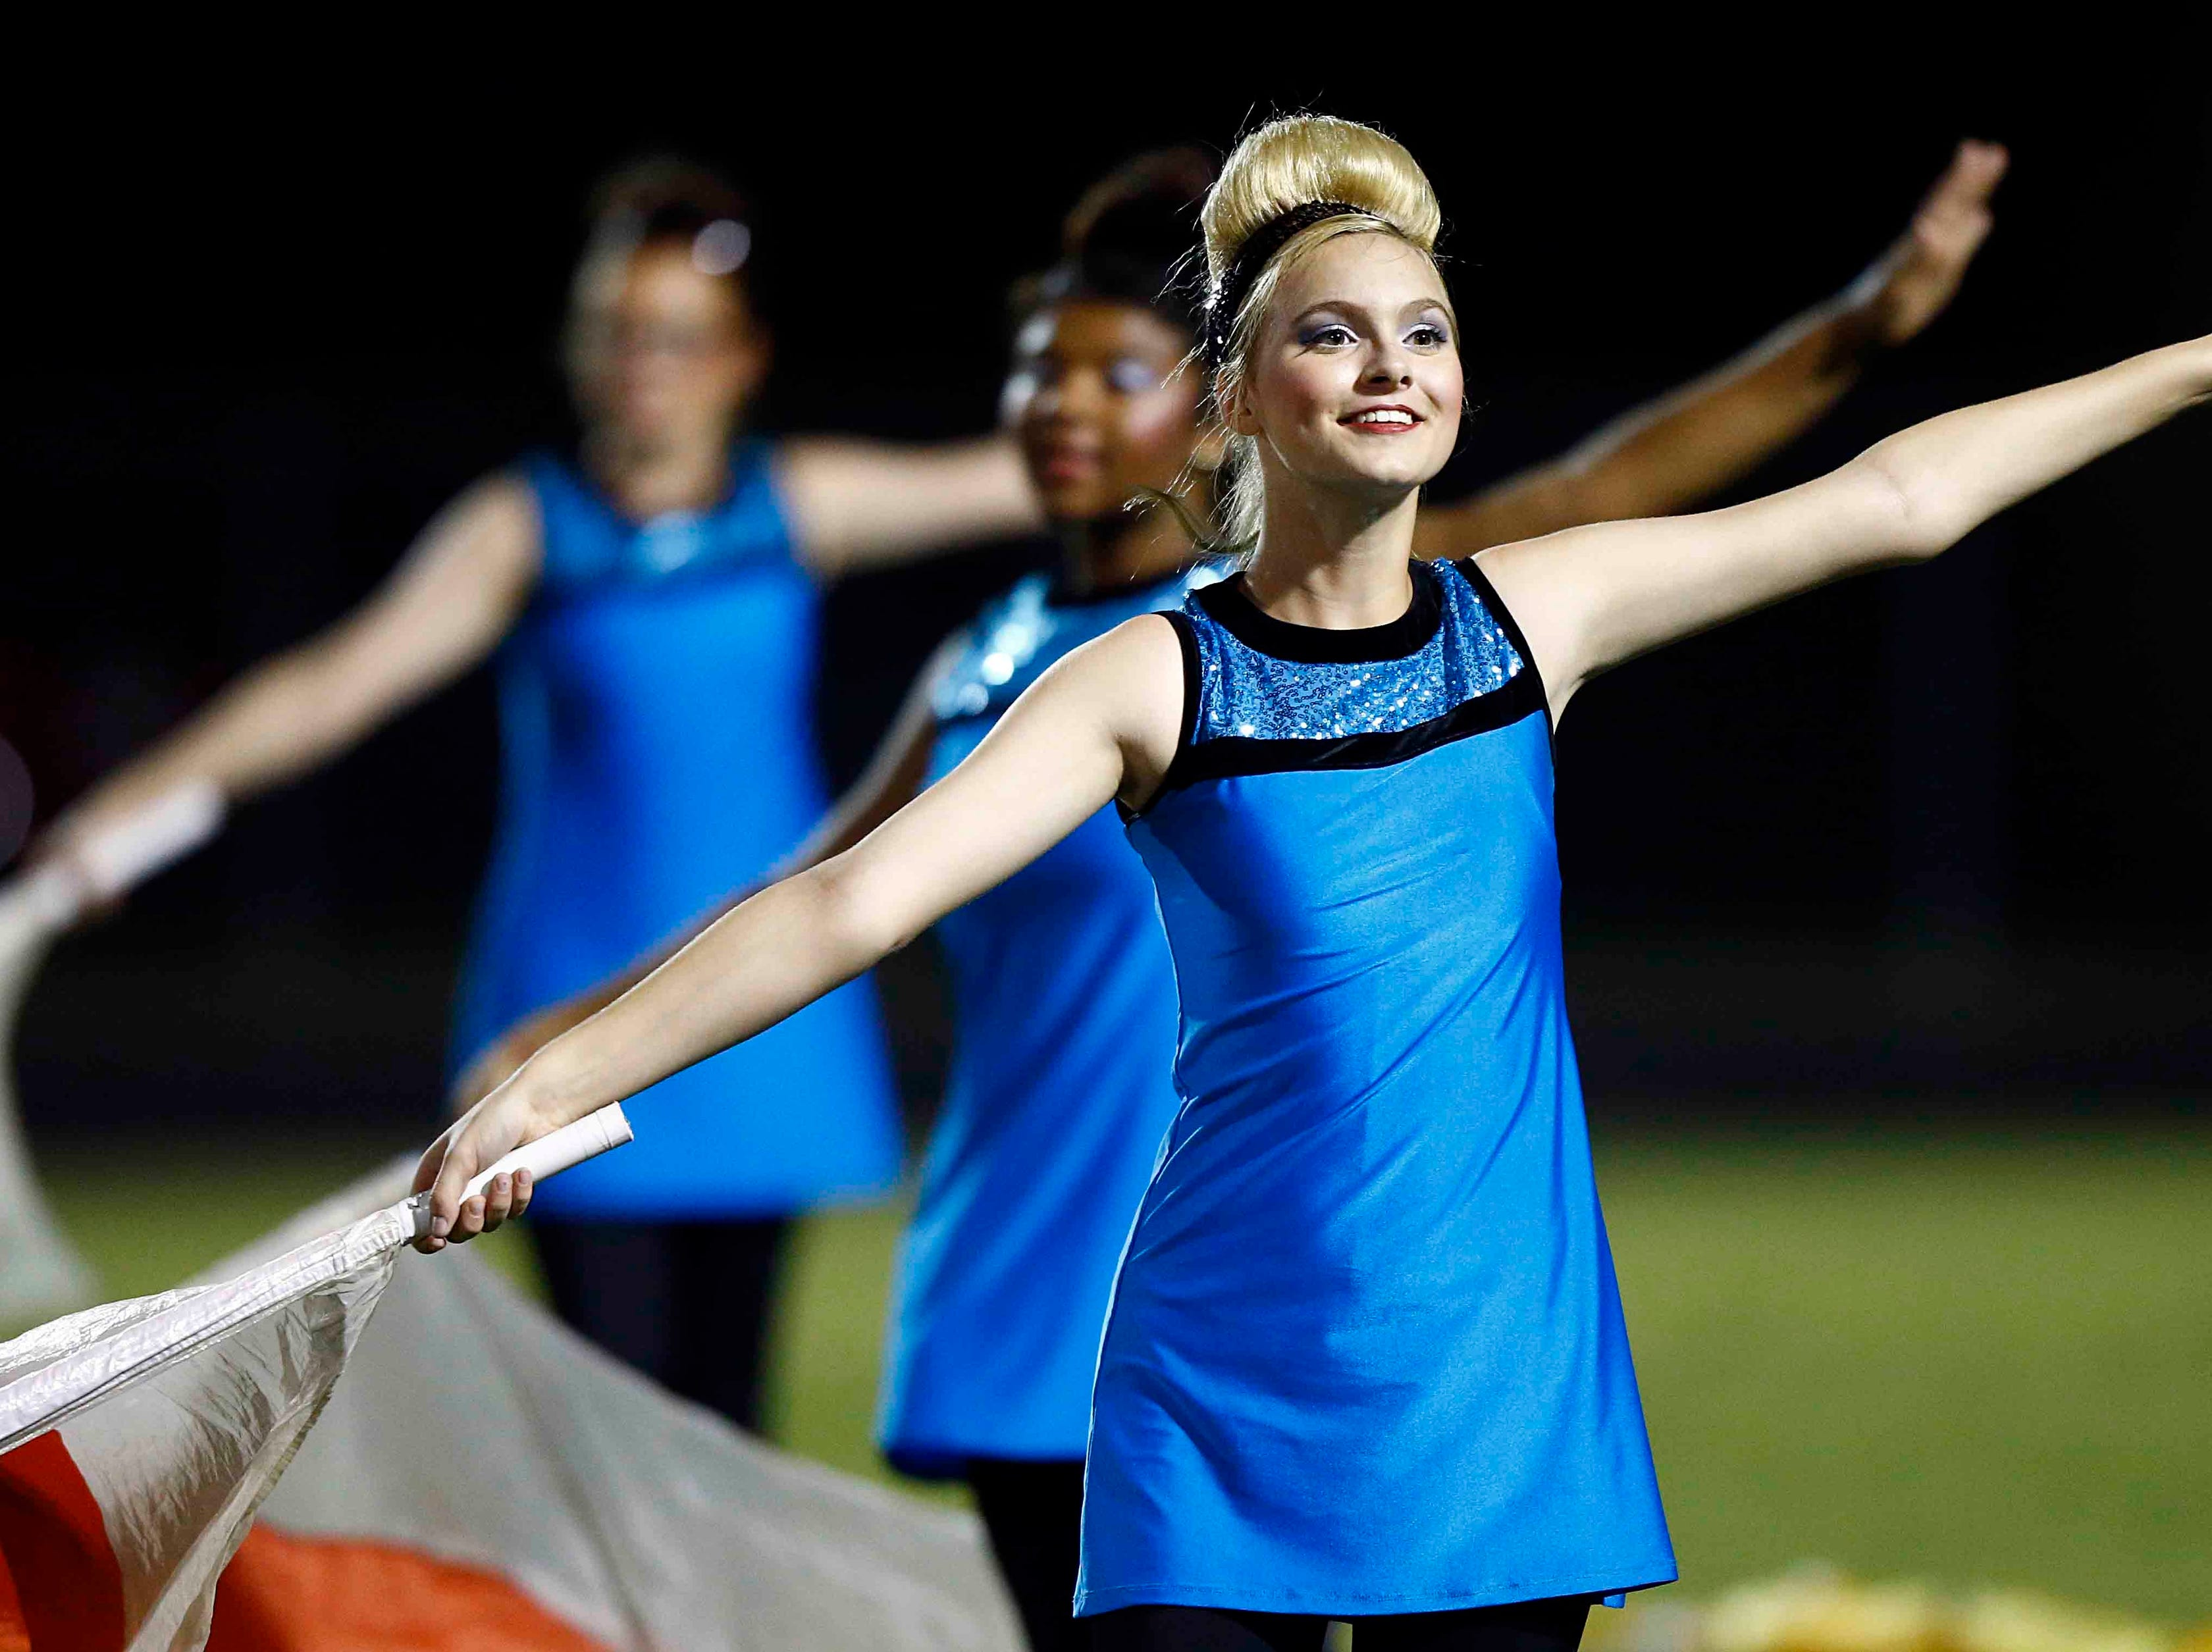 Members of the Creek Wood flag corp perform during halftime of their game against Montgomery Central Friday, Sept. 14, 2018, in Charlotte, Tenn.